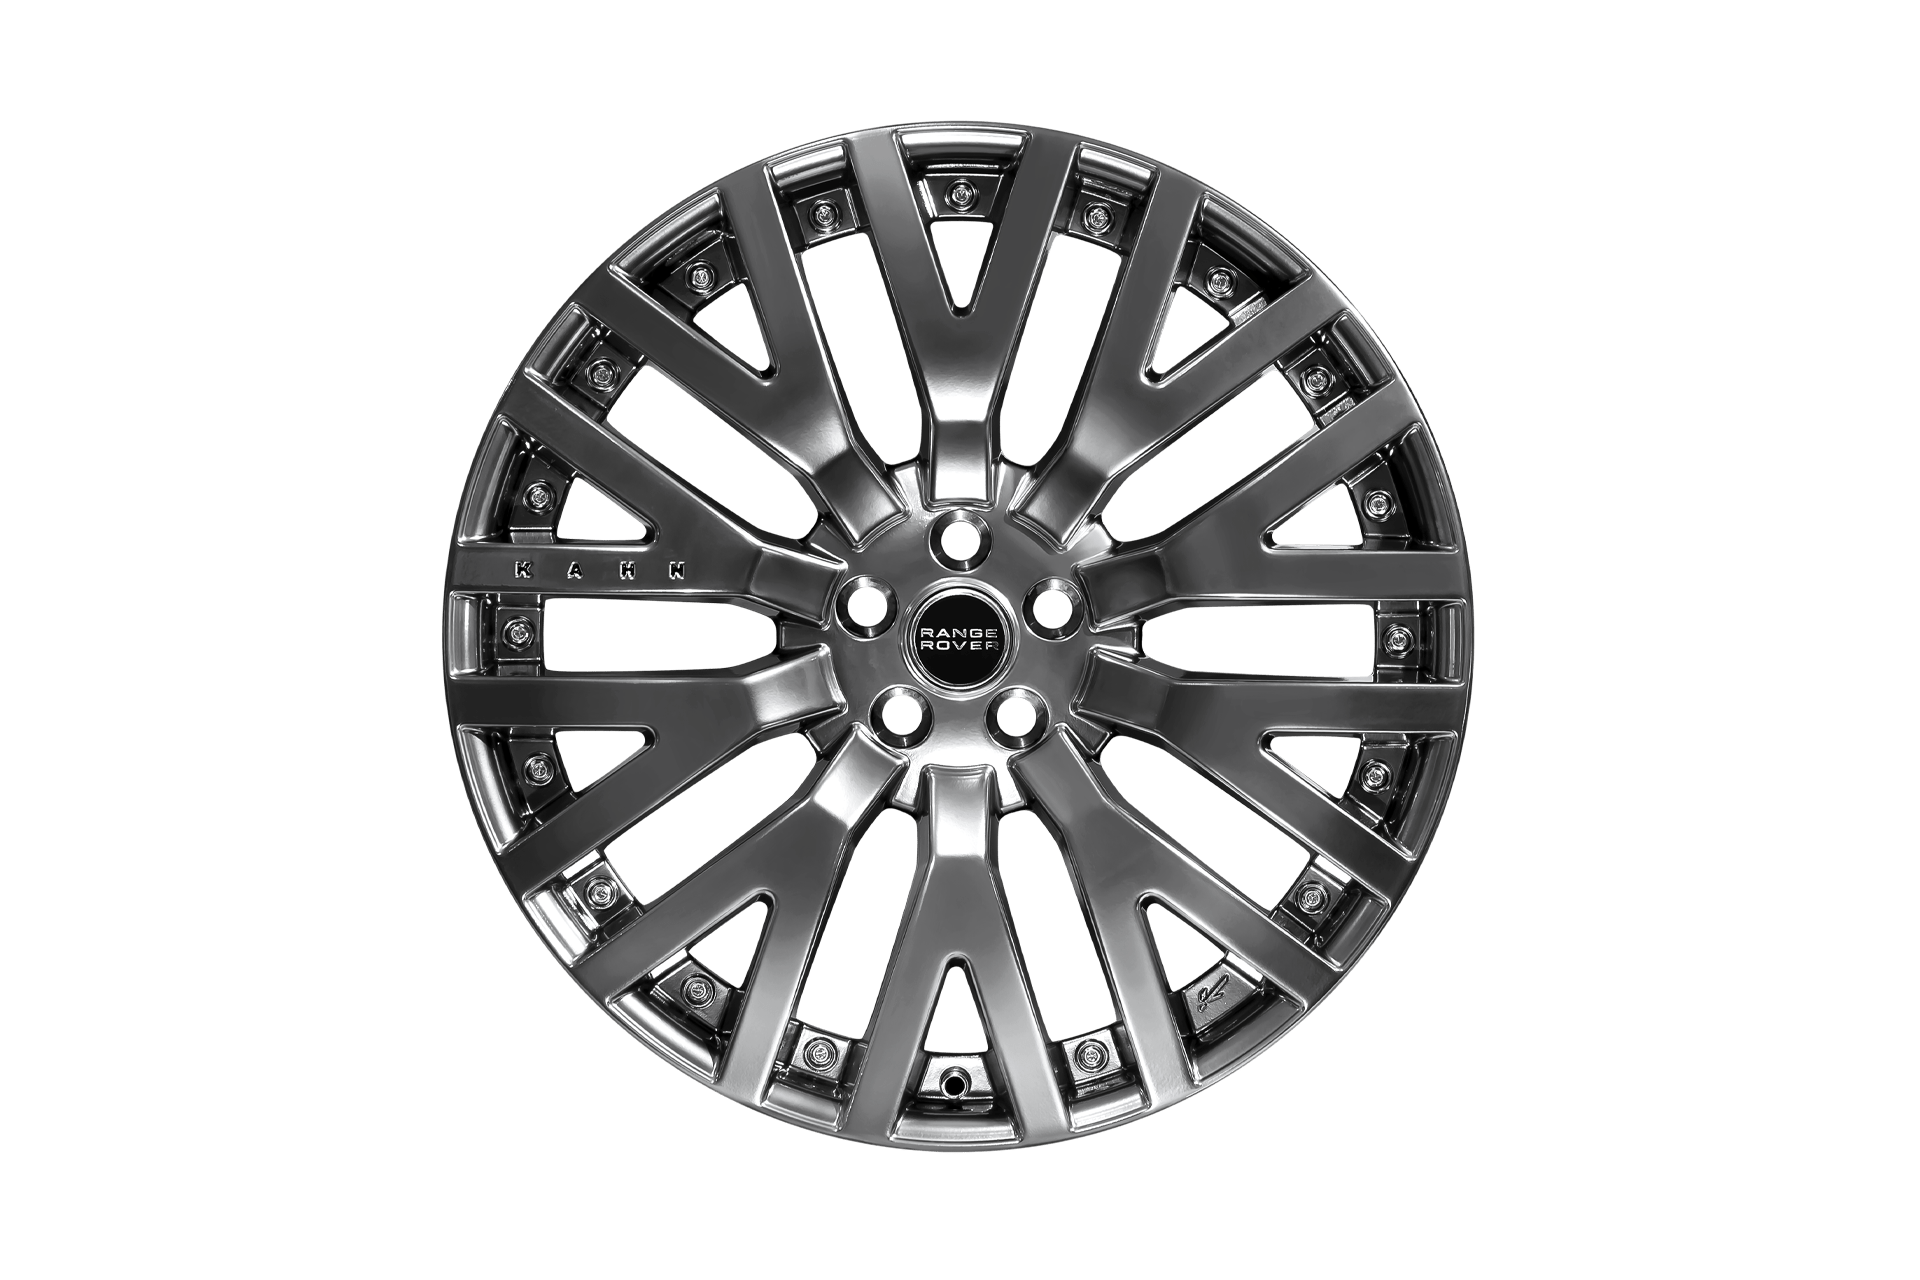 Range Rover (2018-Present) Rs-2 Light Alloy Wheels by Kahn - Image 2615